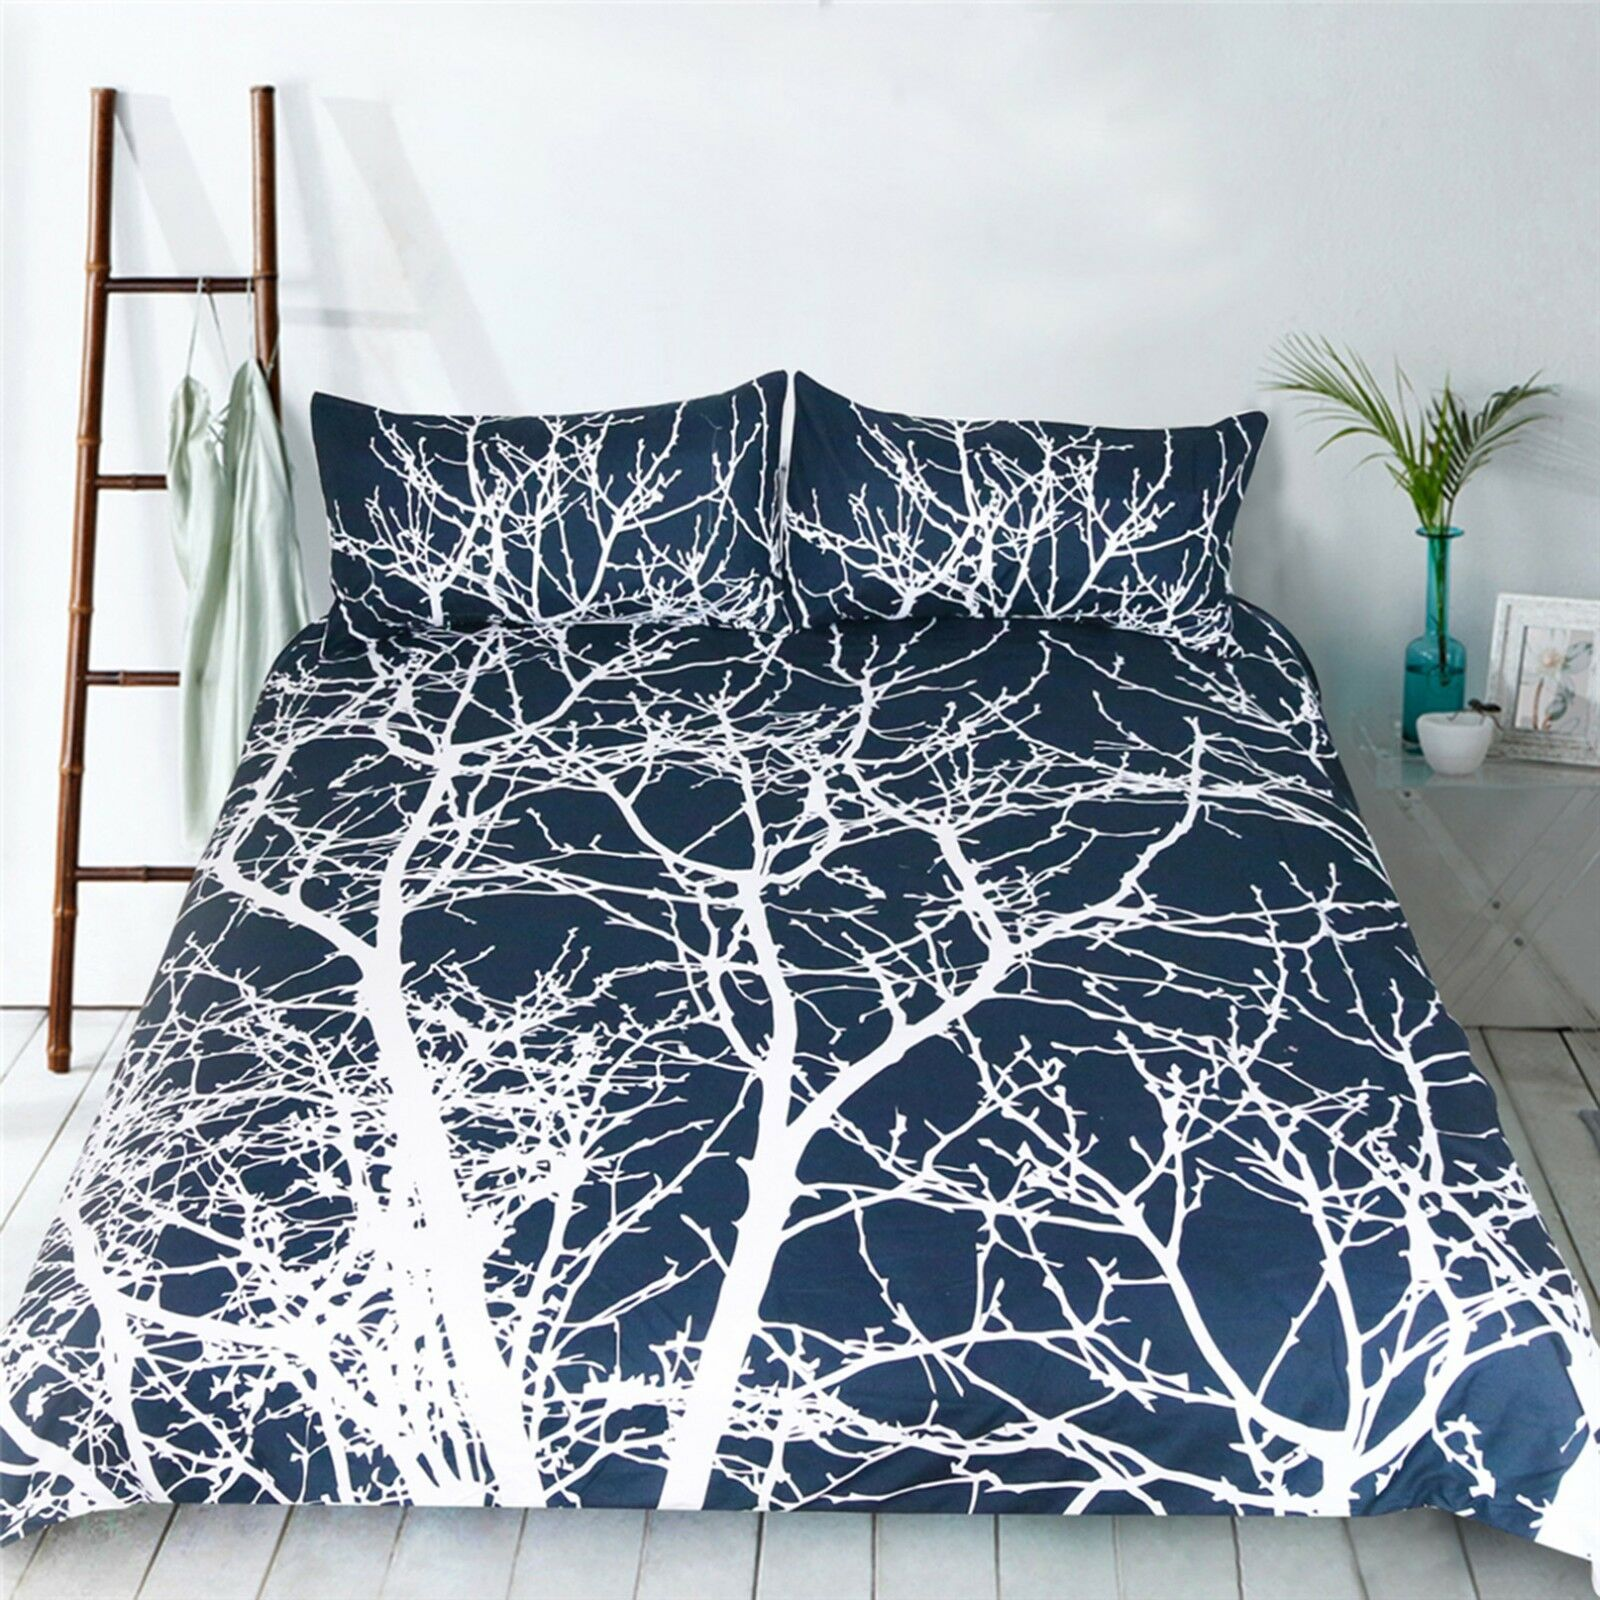 3D blanc Tree 4 Bed PilFaiblecases Quilt Duvet Cover Set Single Queen King AU voiturely